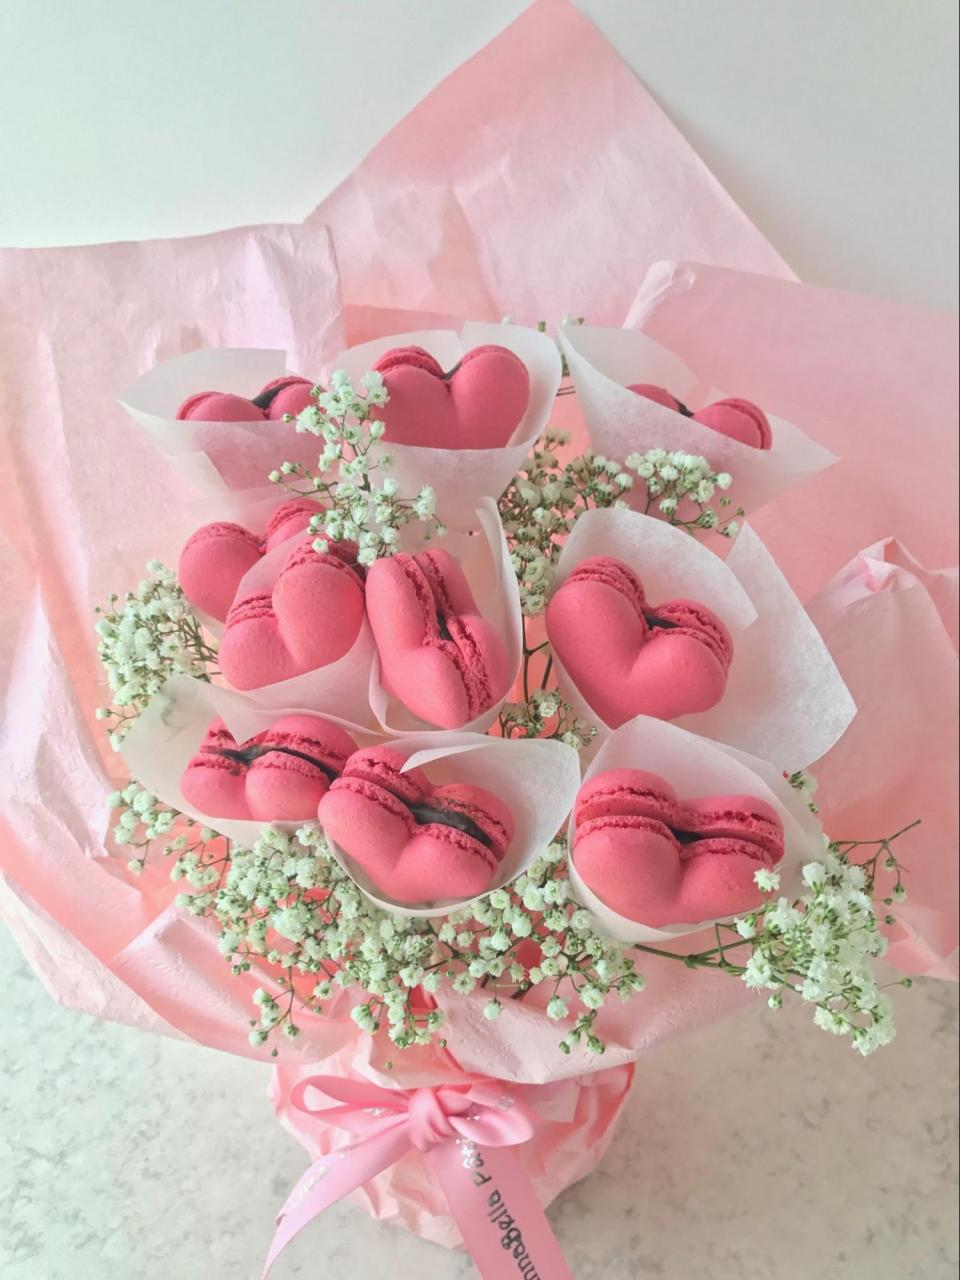 Edible bouquets for Valentine's Day 2019 - Macaron